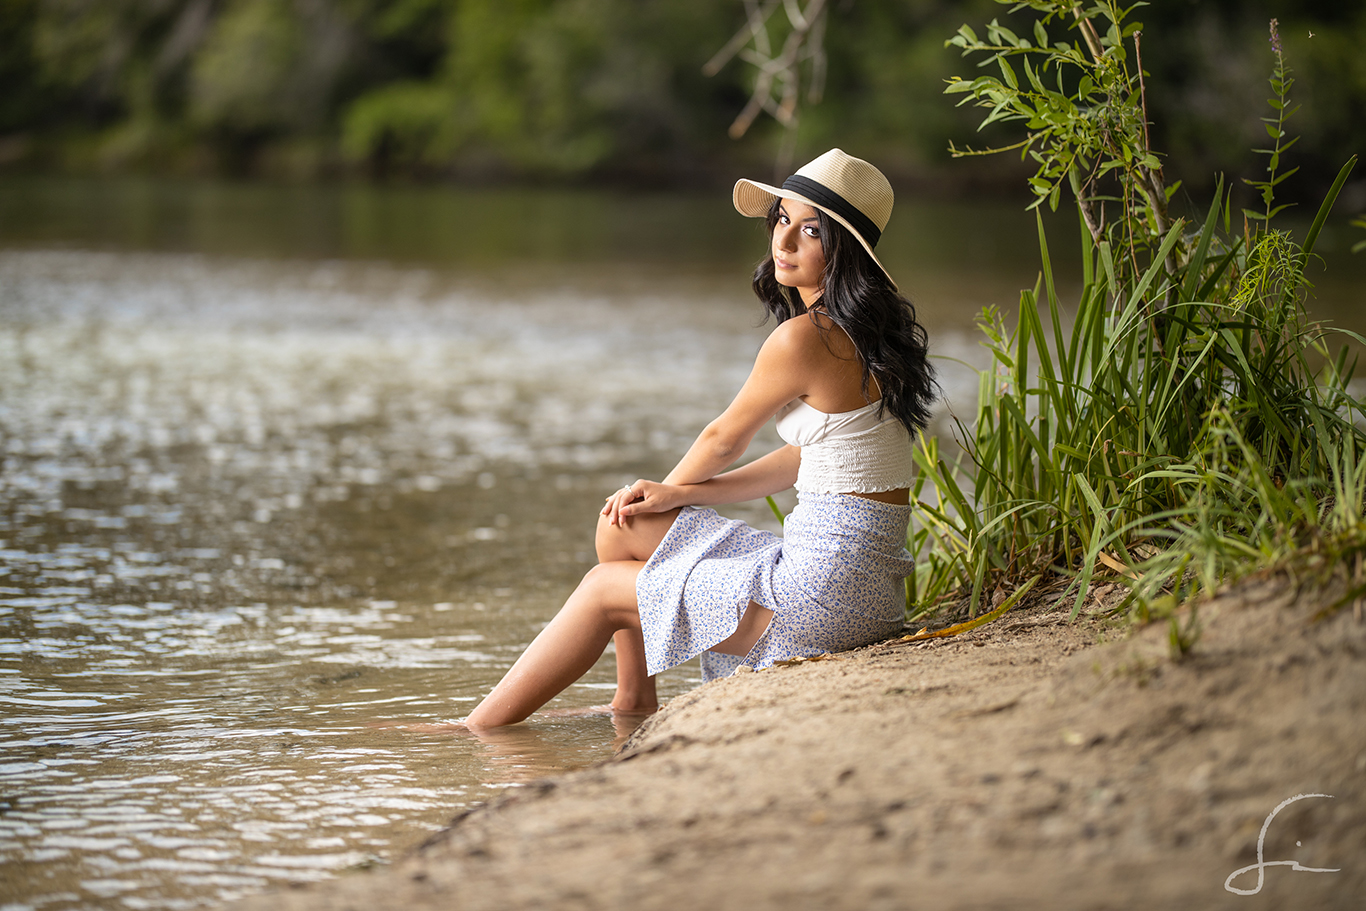 Senior High School girl sitting on the banks of the river with a summer outfit and a bolero hat